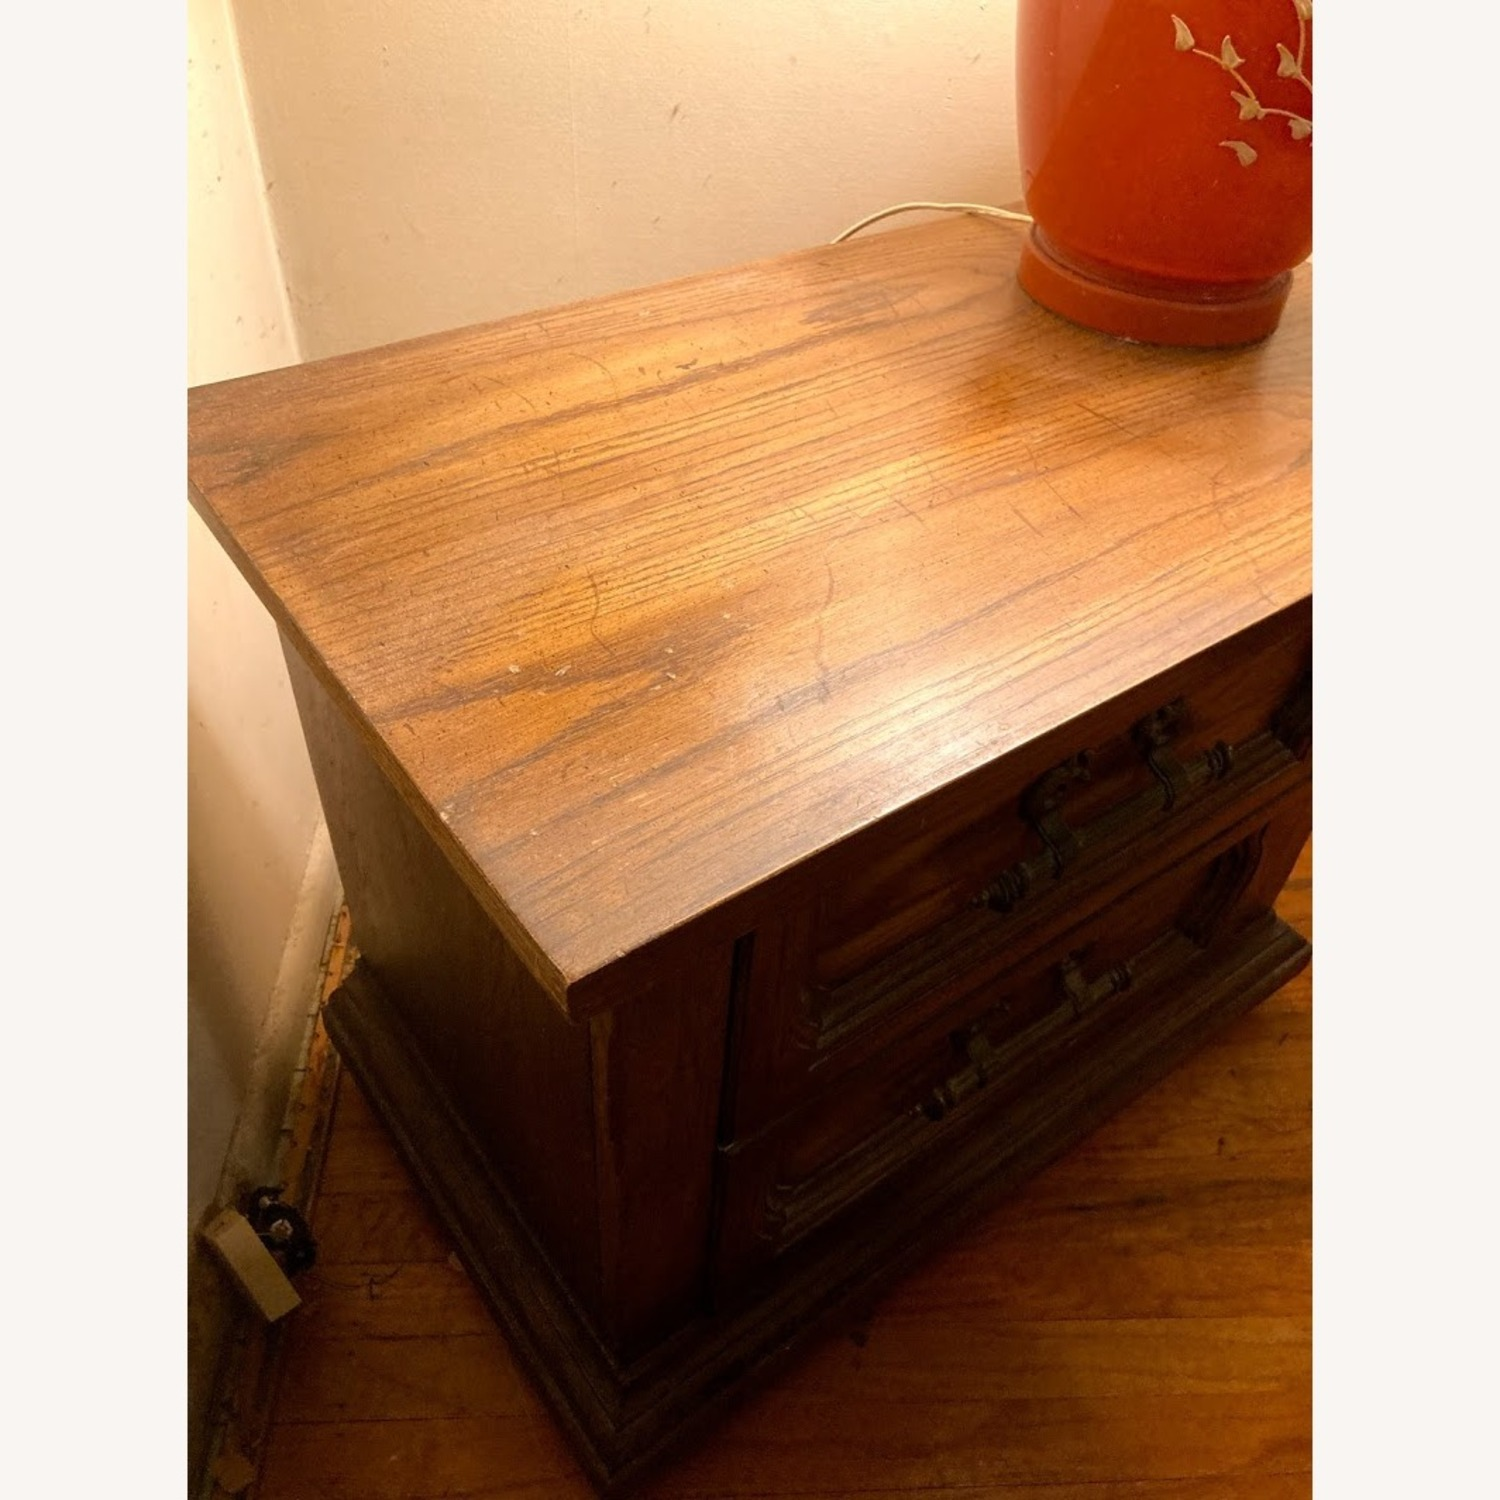 Vintage Solid Wood Side Table with 2 Drawers - image-2